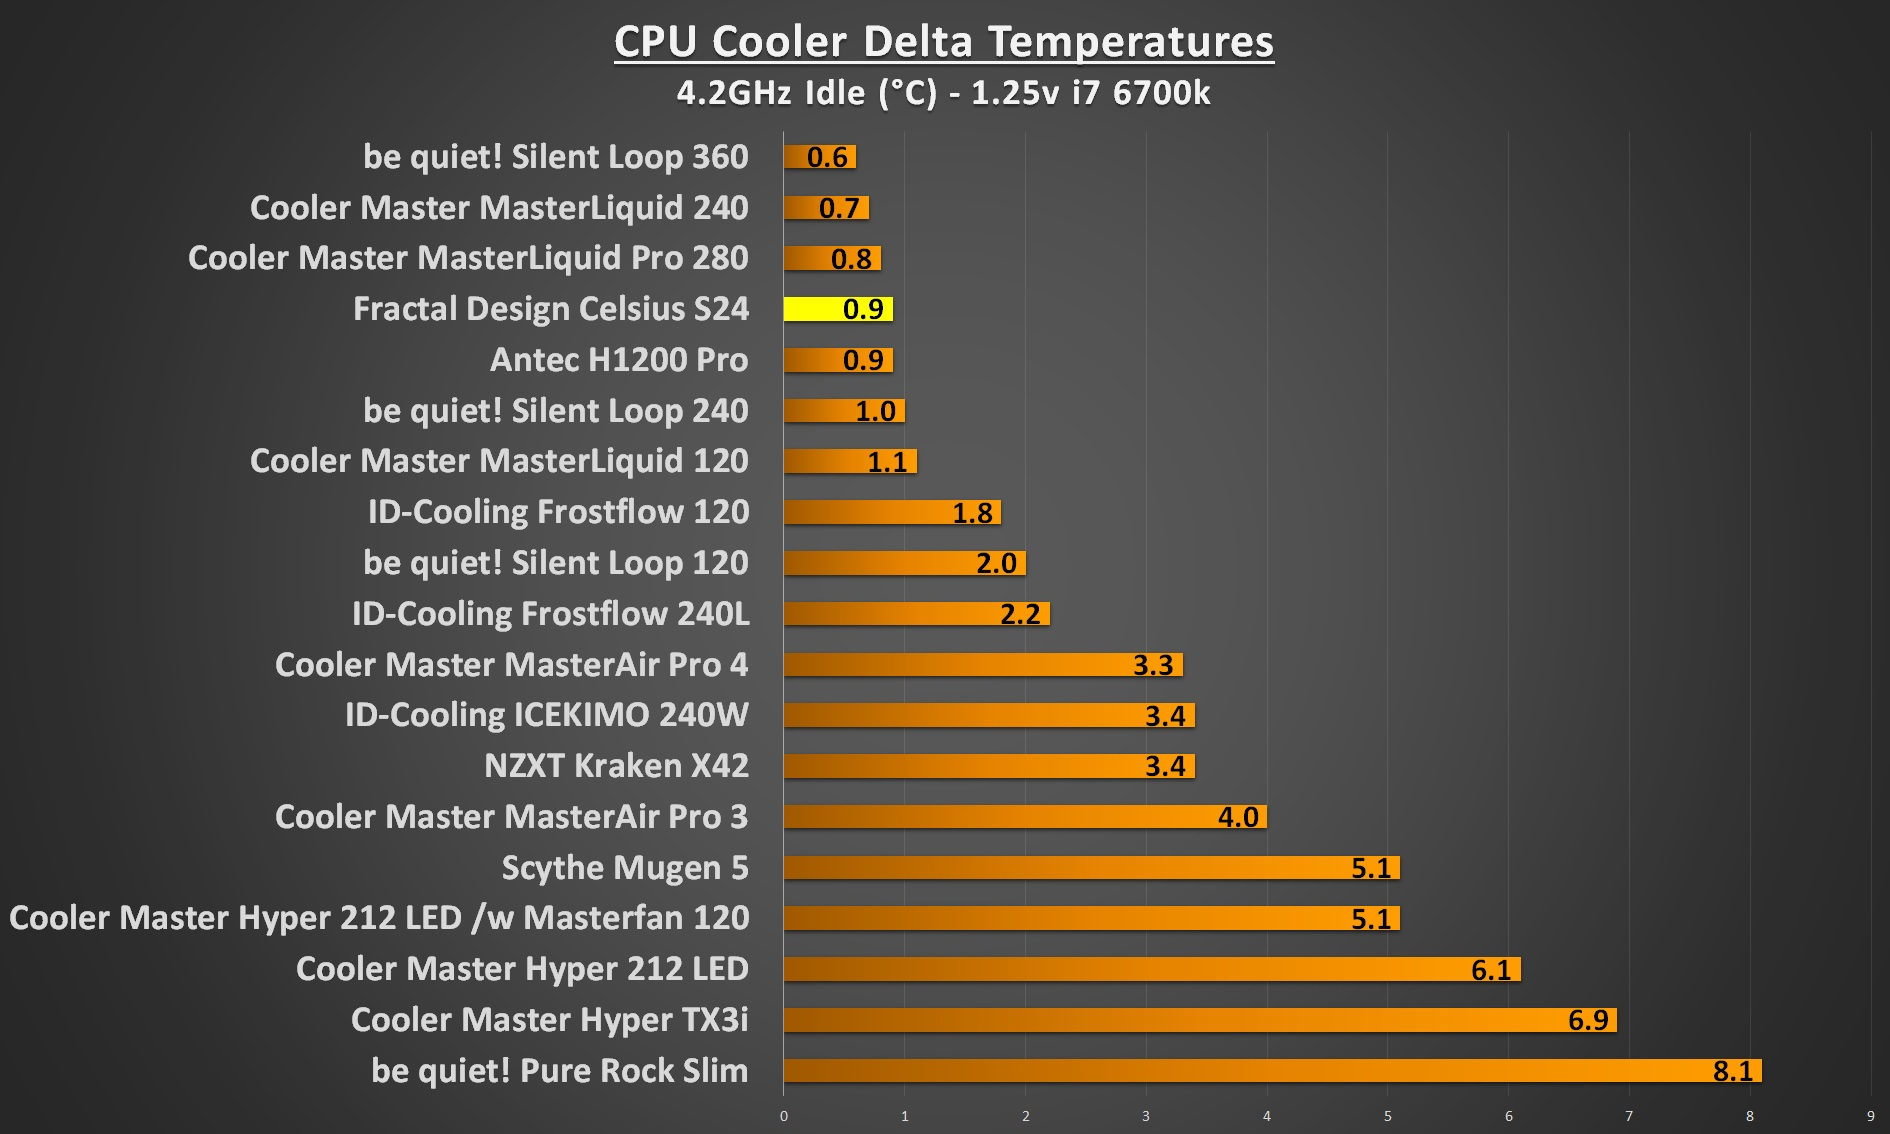 Fractal Design Celsius S24 4.2Ghz idle